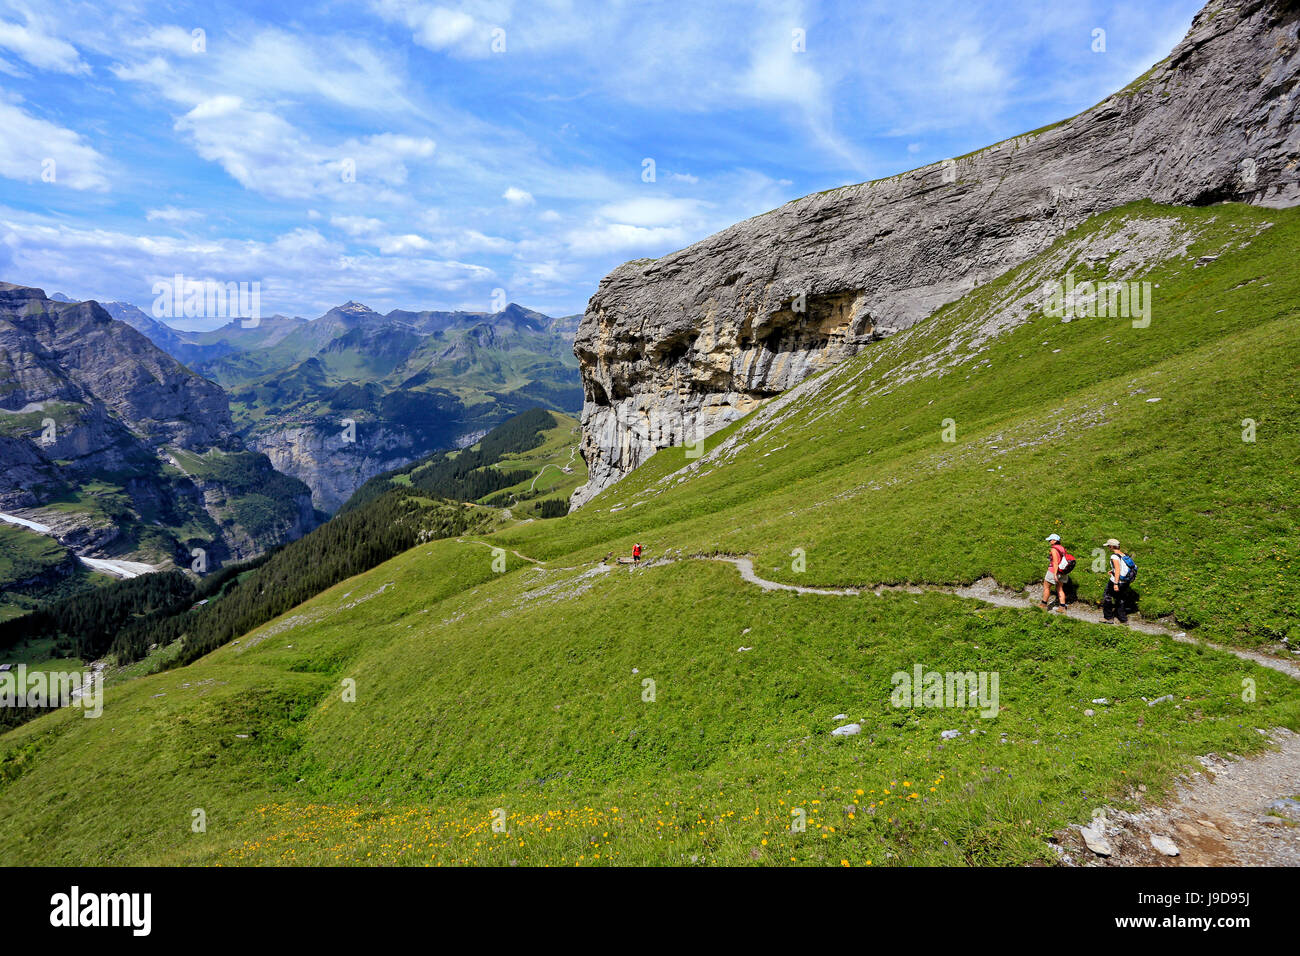 Hikers at Kleine Scheidegg, Grindelwald, Bernese Oberland, Switzerland, Europe - Stock Image